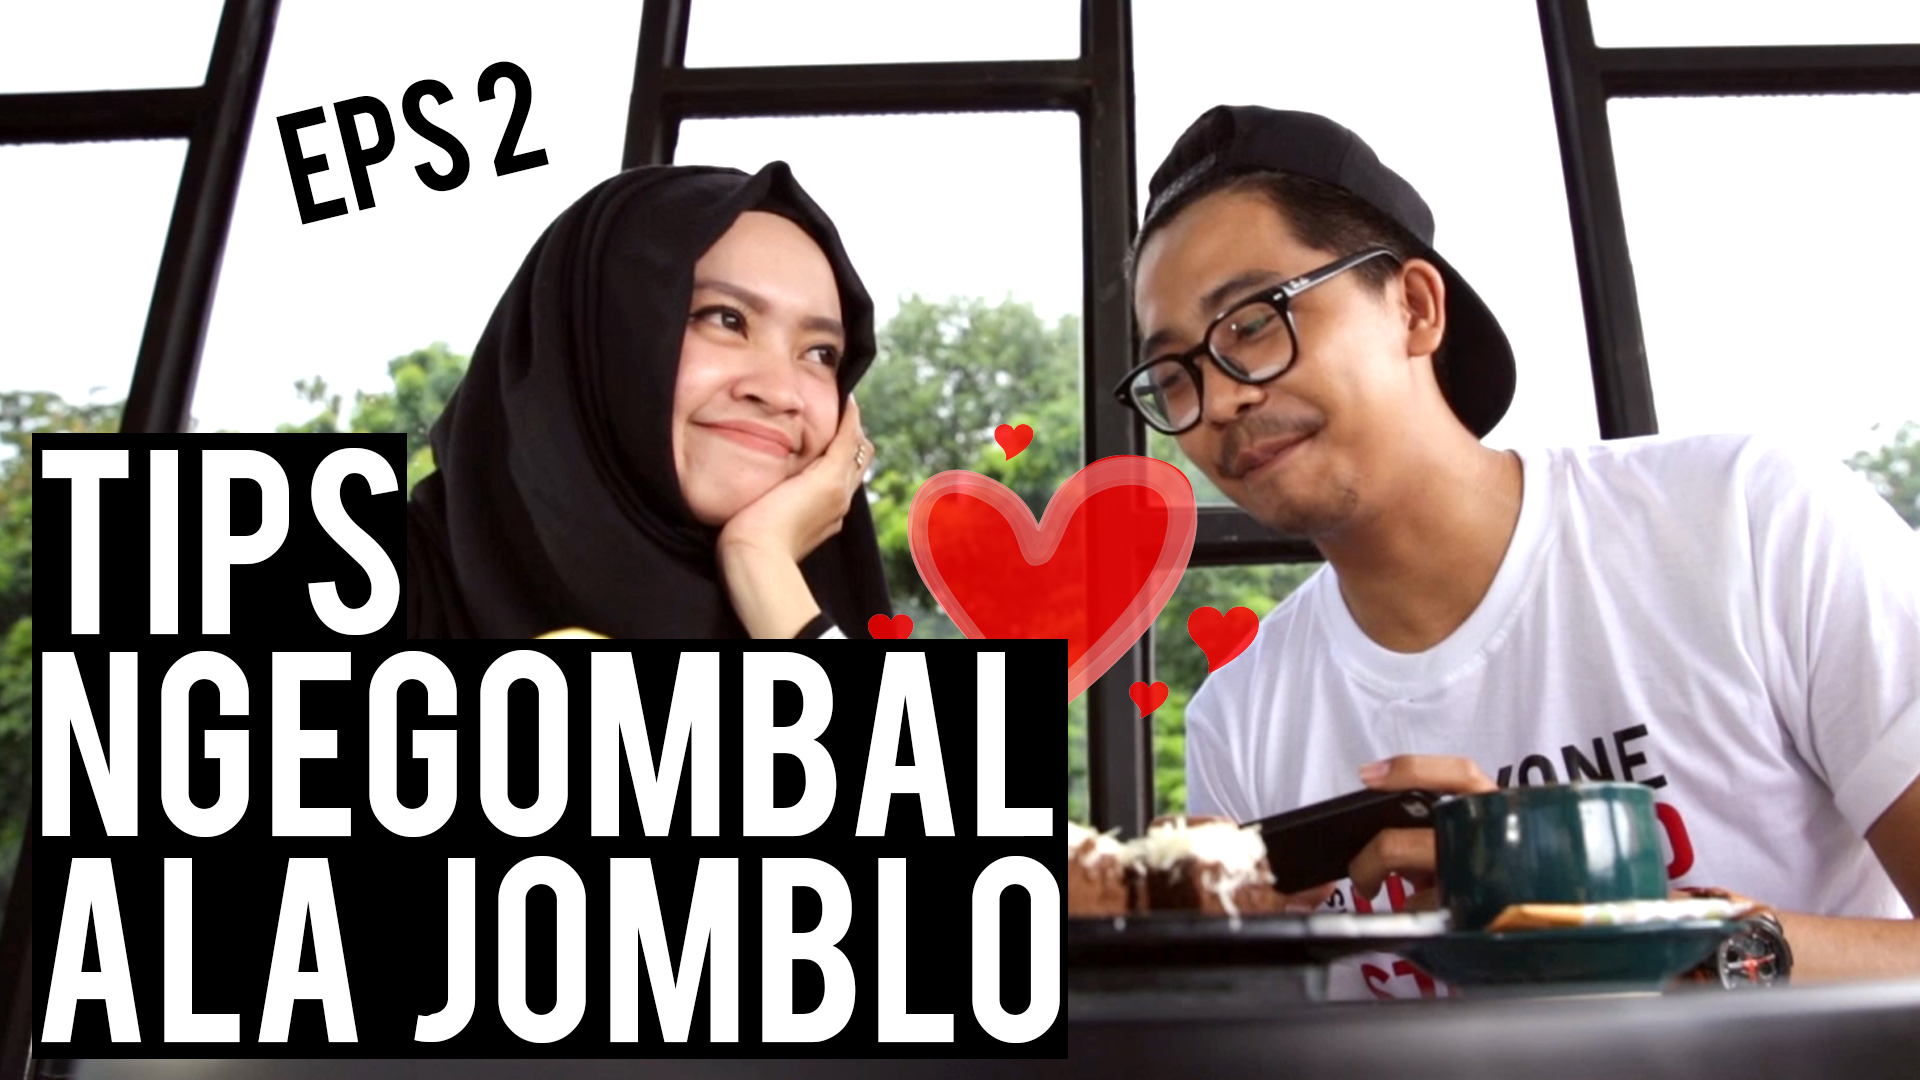 Tips Gombal Ala Jomblo Episode 2